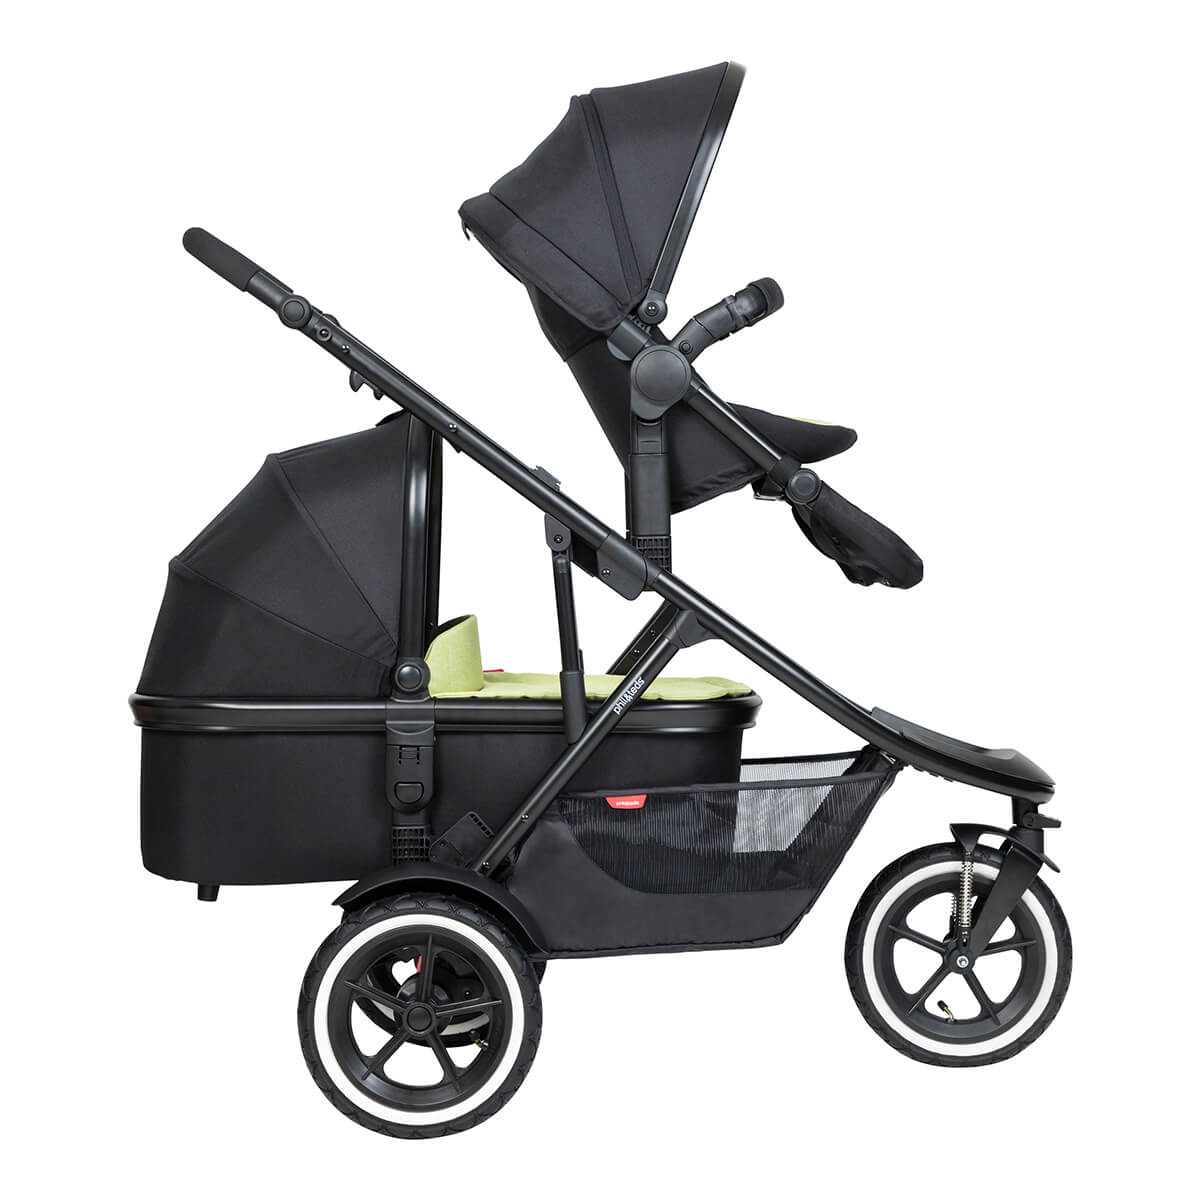 https://cdn.accentuate.io/4546158166121/19119322726505/philteds-sport-buggy-with-double-kit-extended-clip-and-snug-carrycot-side-view-v1625778355696.jpg?1200x1200